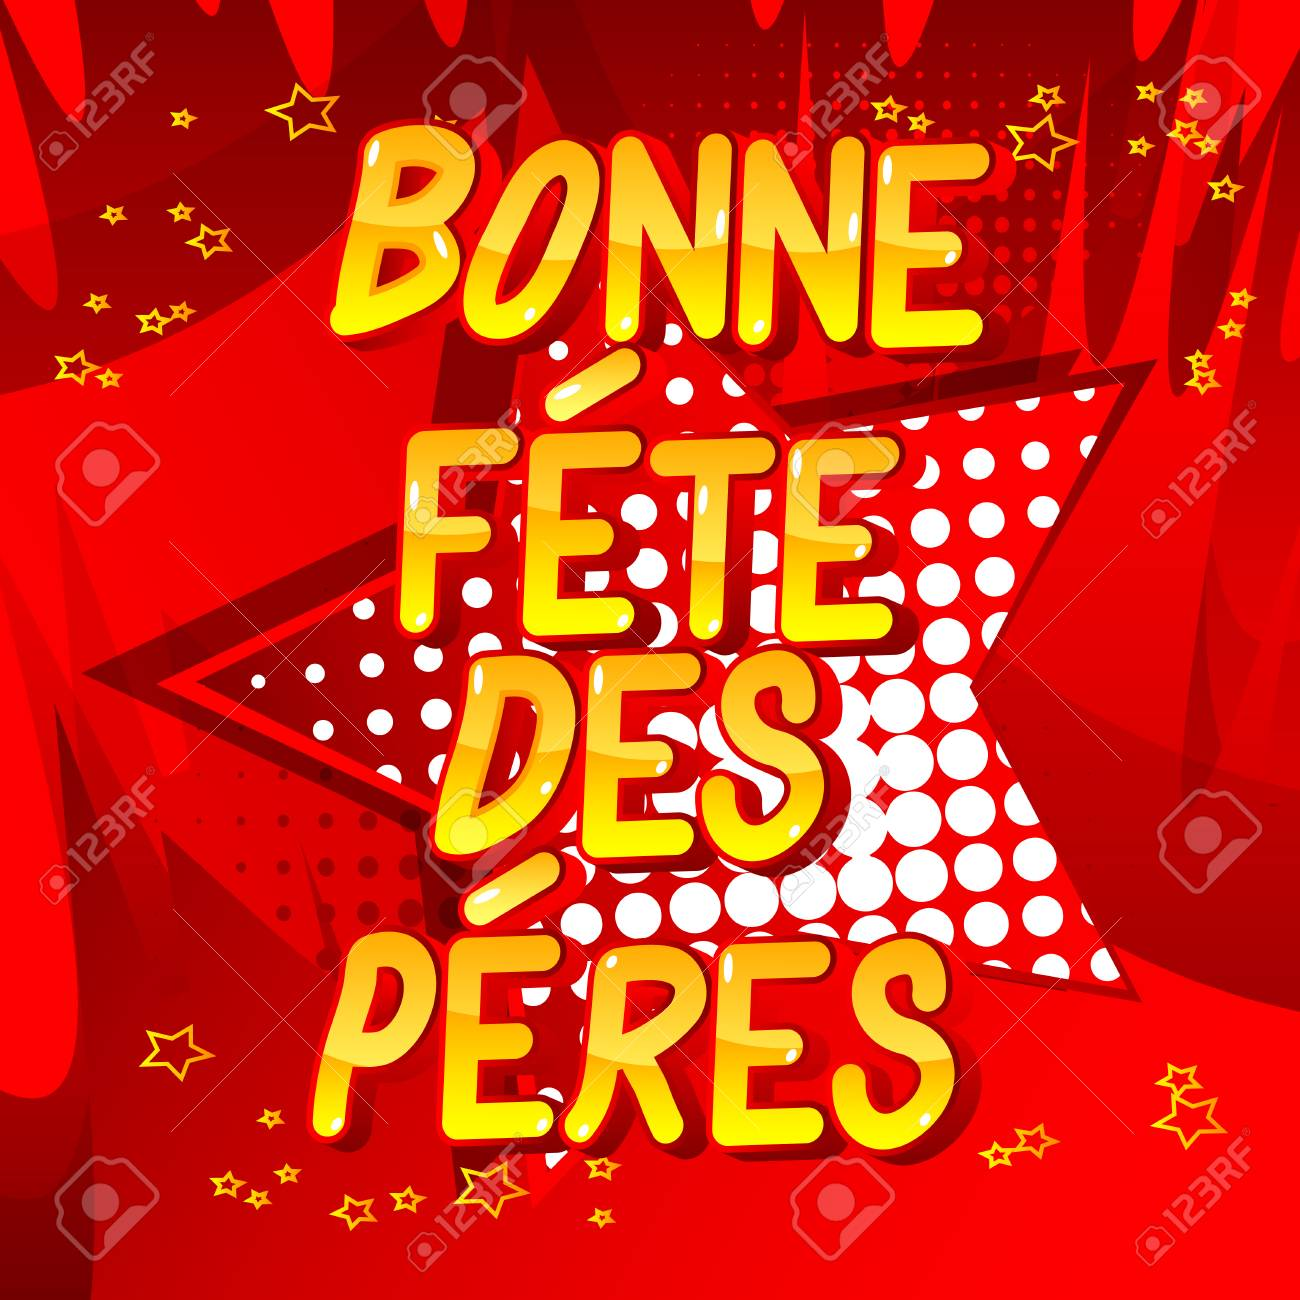 Bonne Fete Des Peres Fathers Day In French Vector Illustrated